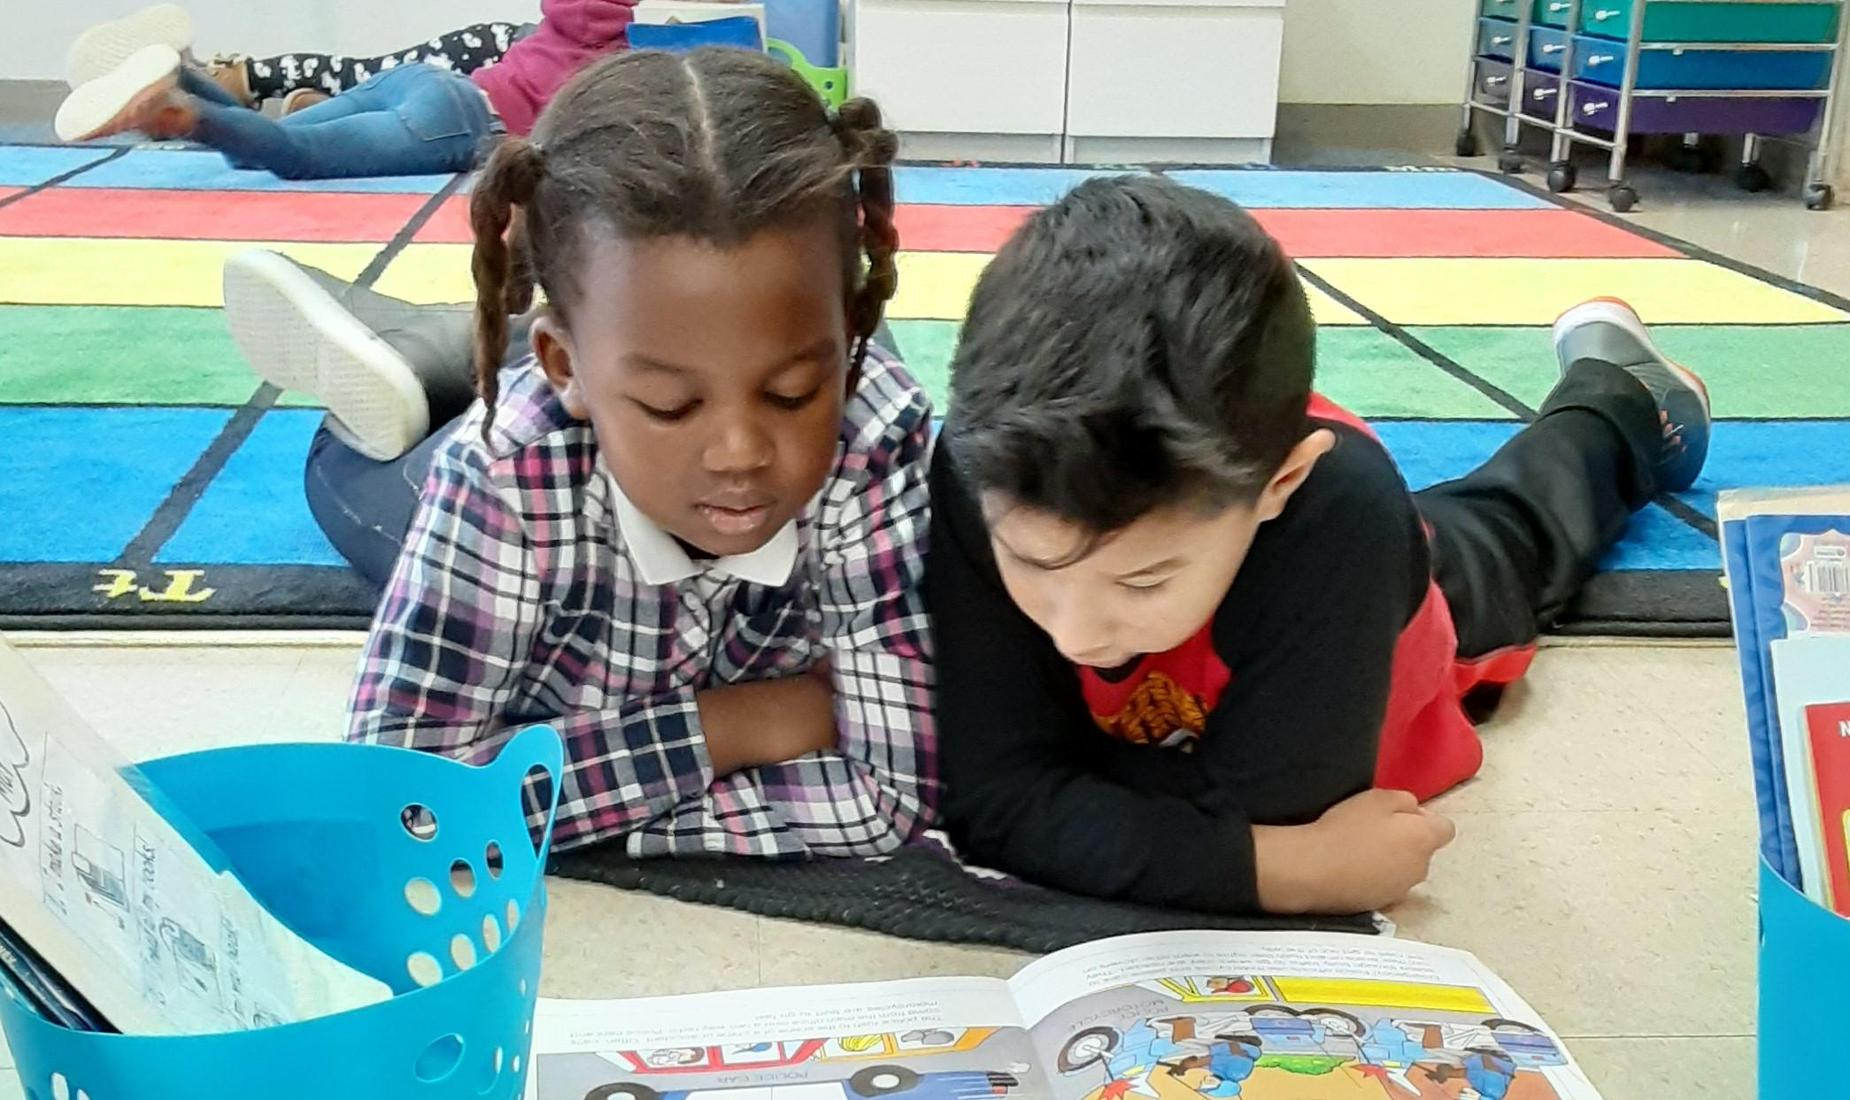 Little girl and little boy laying on their stomachs and leaning on their elbows, reading a Dr. Seuss book together